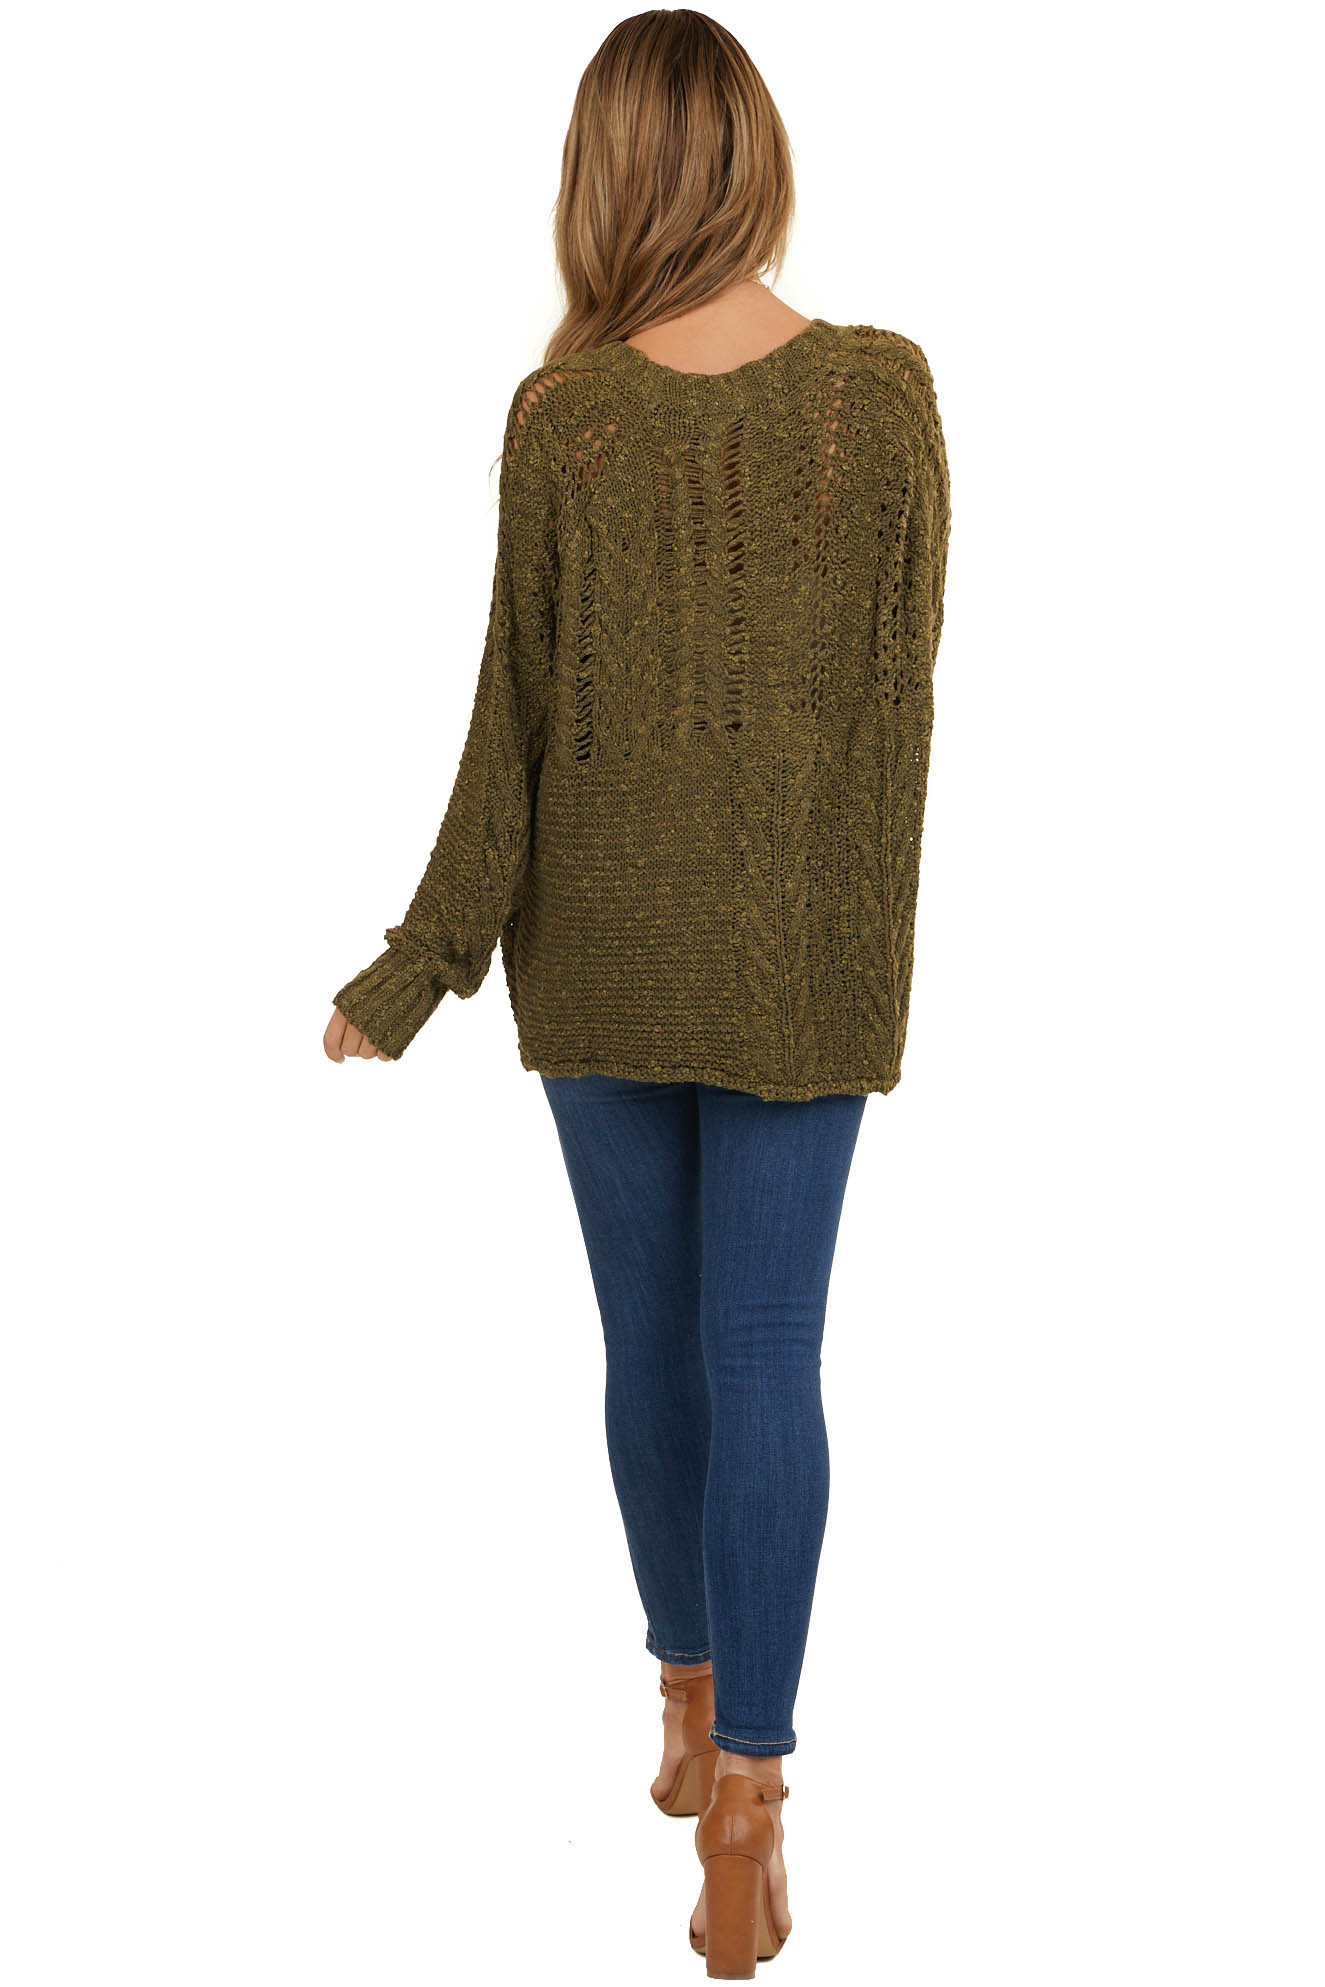 Dark Olive Oversize Raglan Sweater with Loose Knit Details